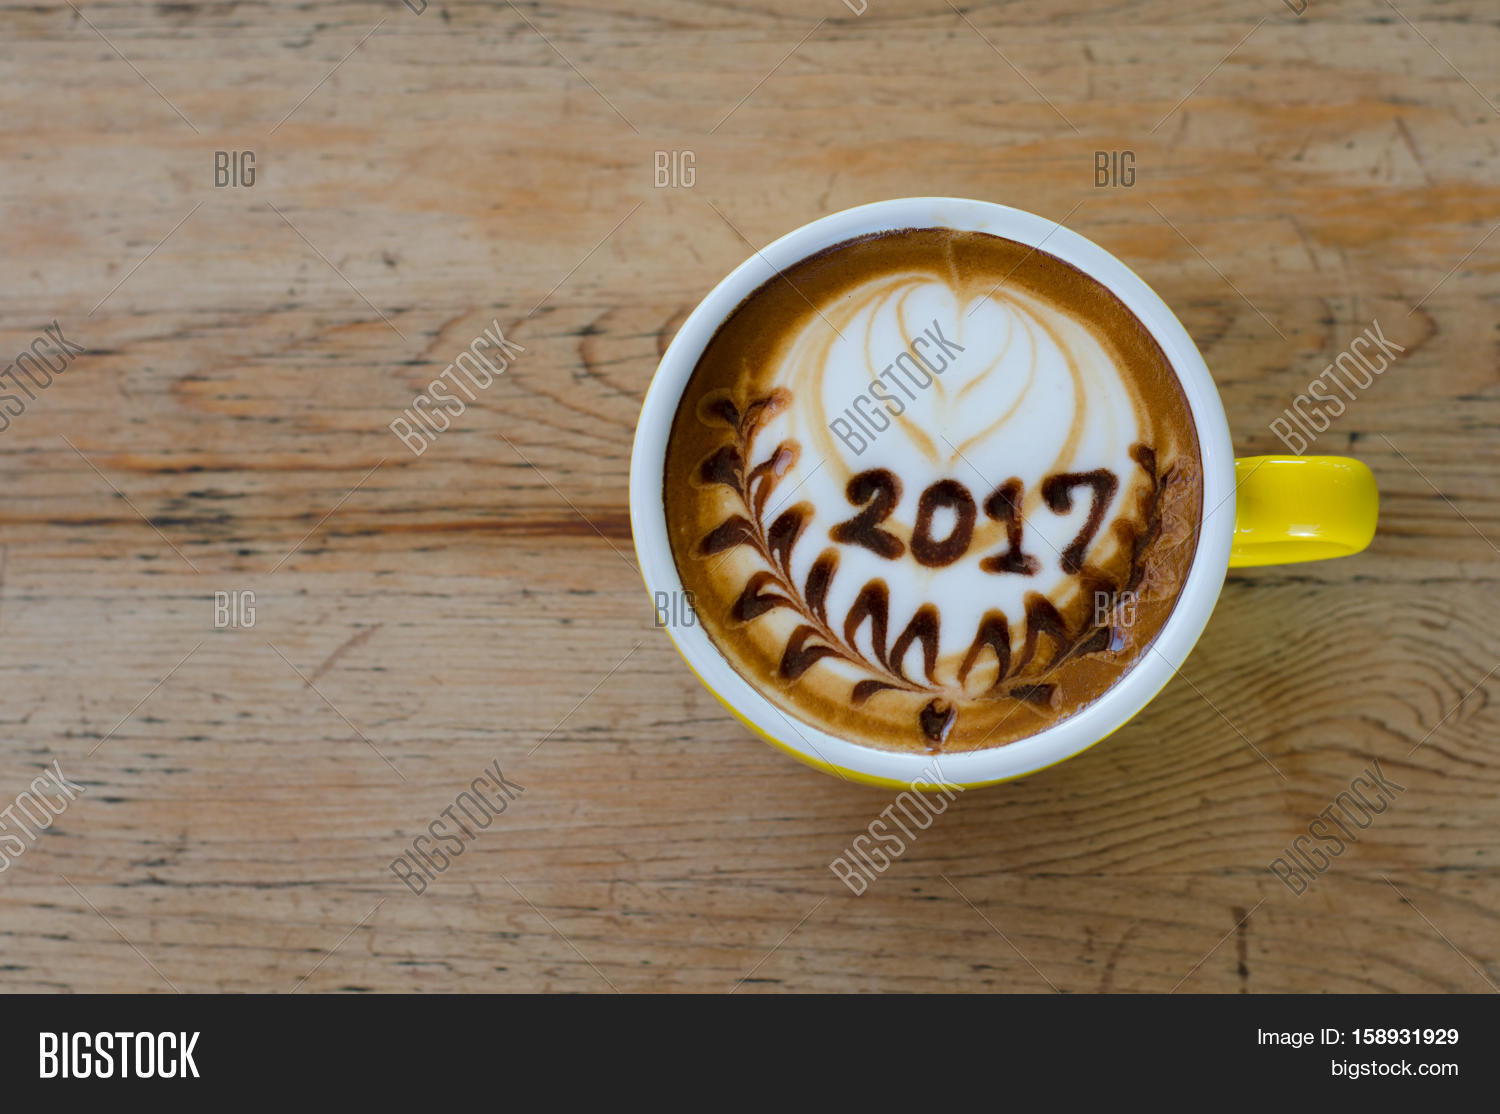 hot coffee with foam milk art 2017 on wooden table stock photo